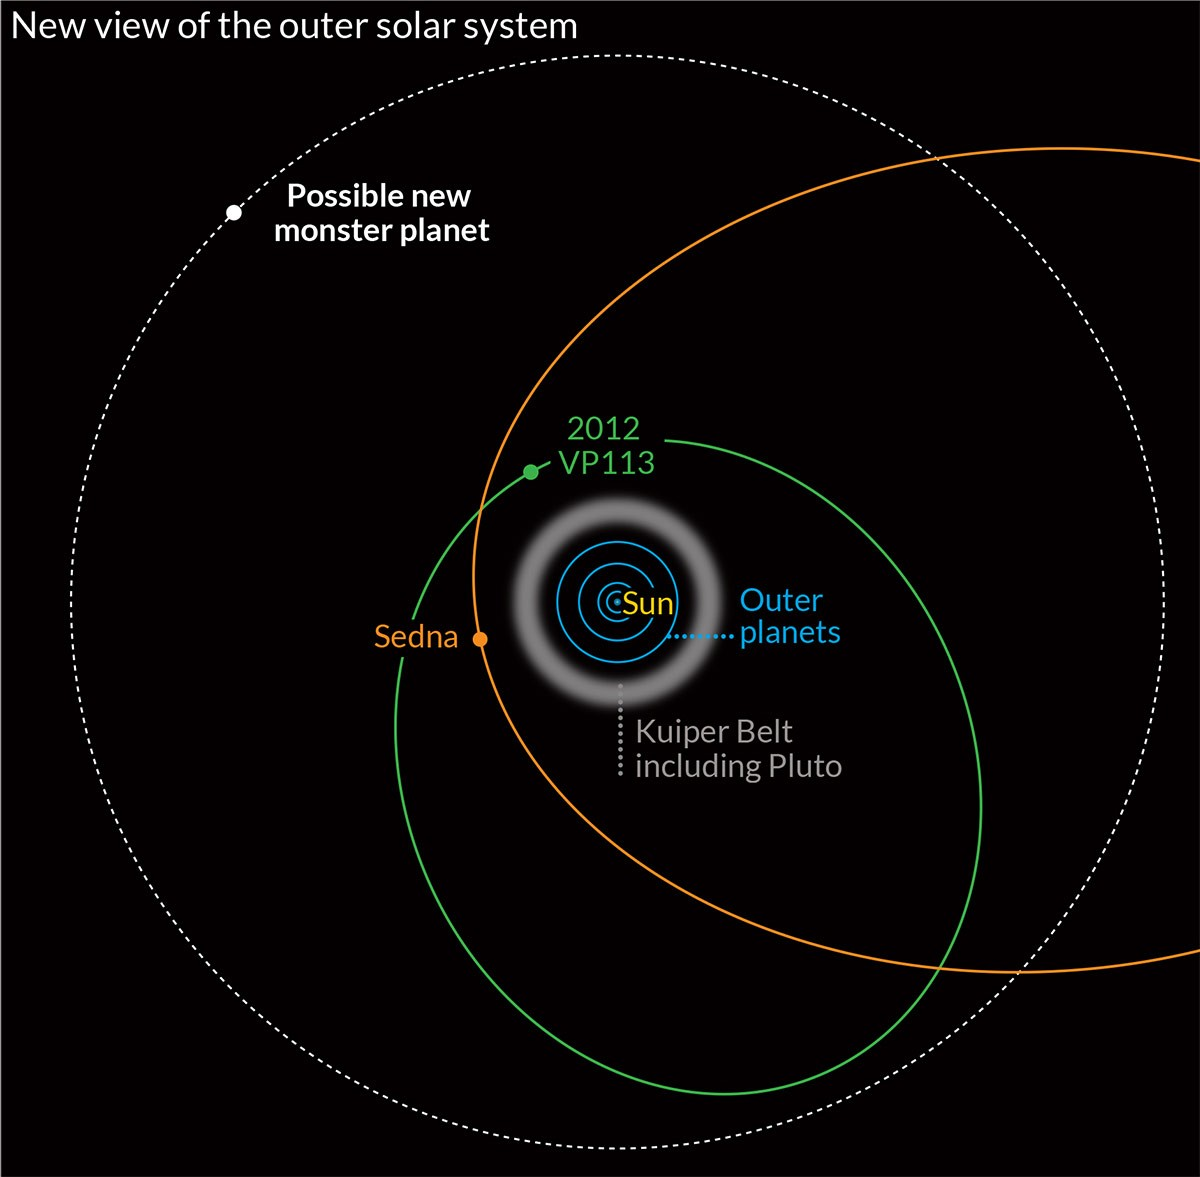 New View Of The Outer Solar System